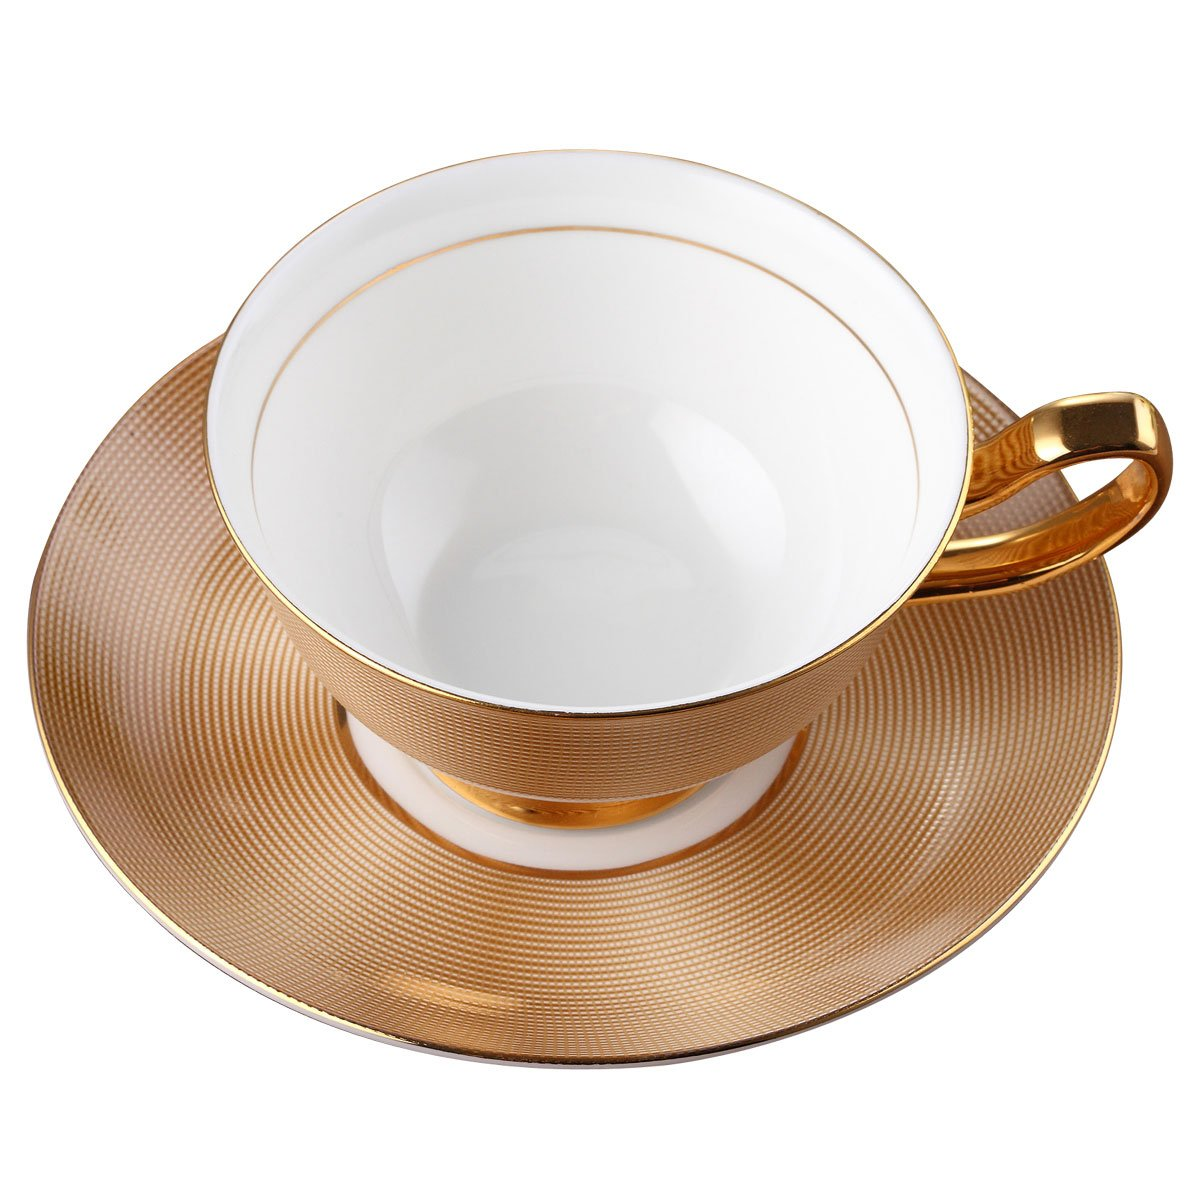 porcelain tea cup and saucer coffee cup set golden color with saucer and spoon 8 737534199725 ebay. Black Bedroom Furniture Sets. Home Design Ideas